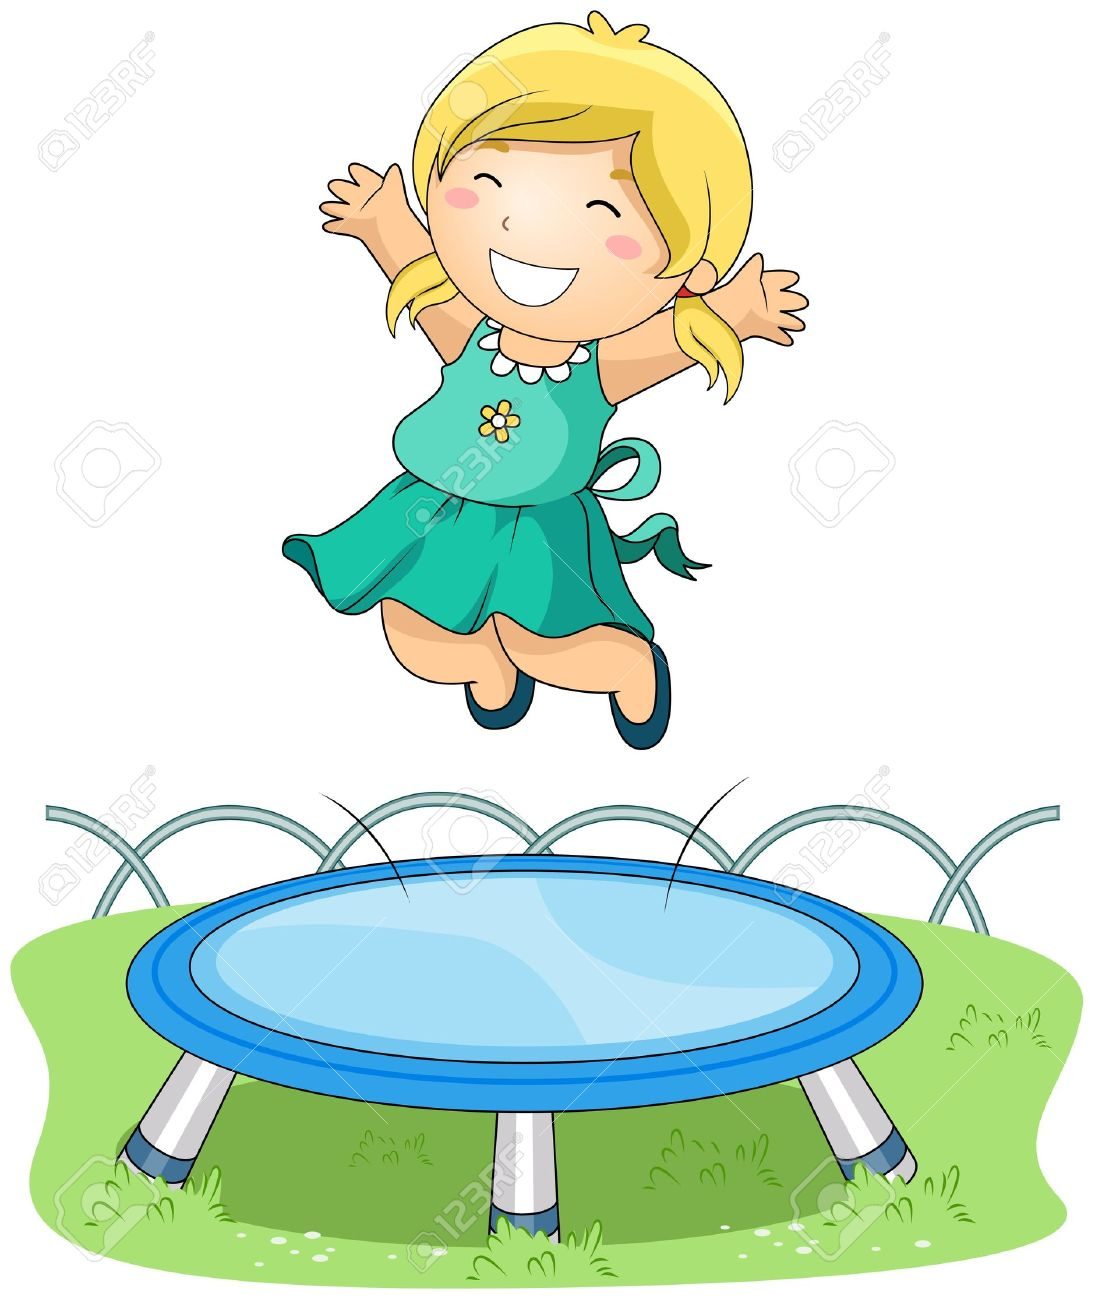 Jumping clipart 8 » Clipart Station.